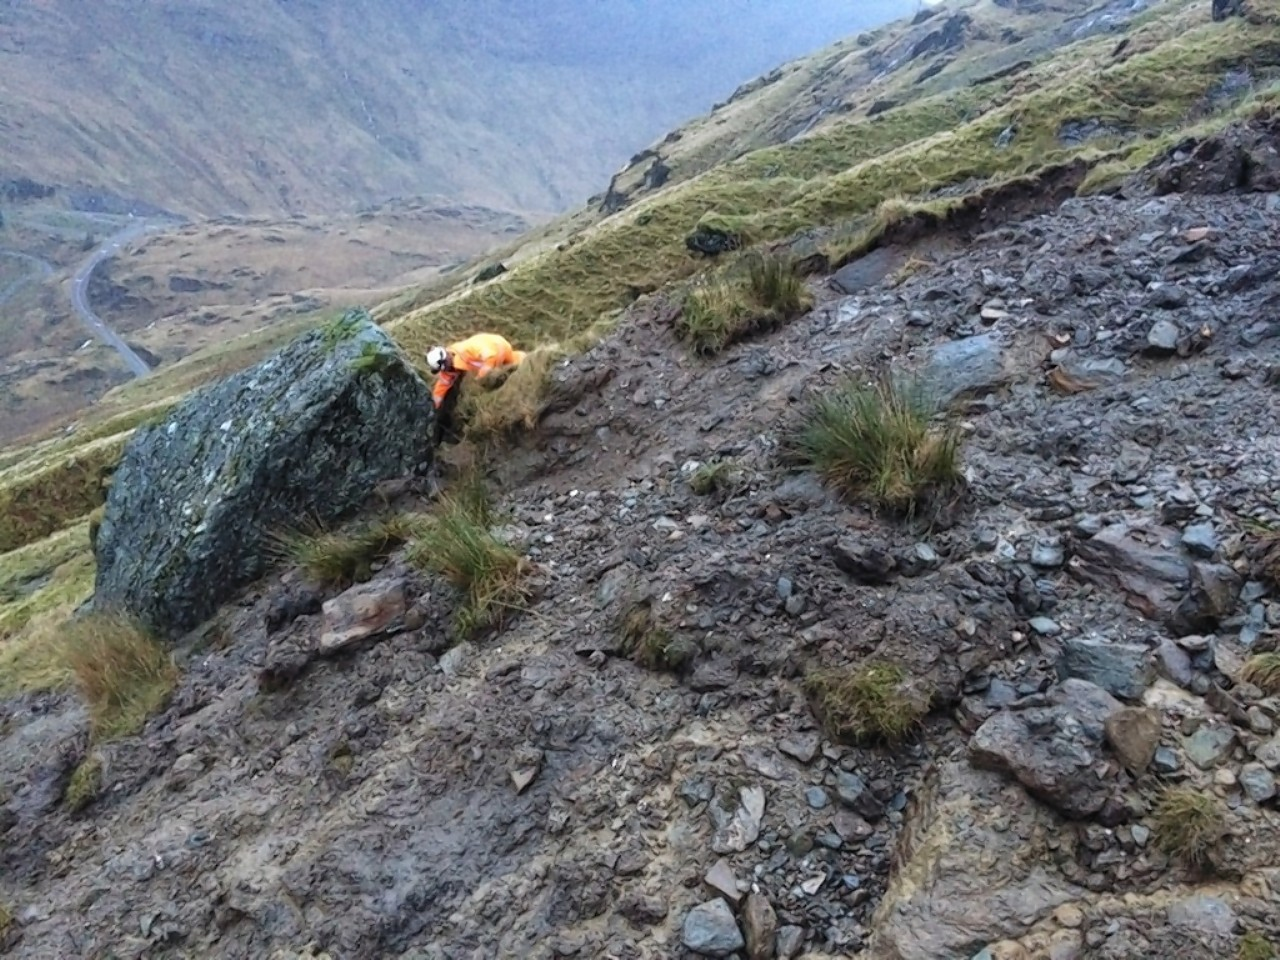 The boulder balancing over the A83